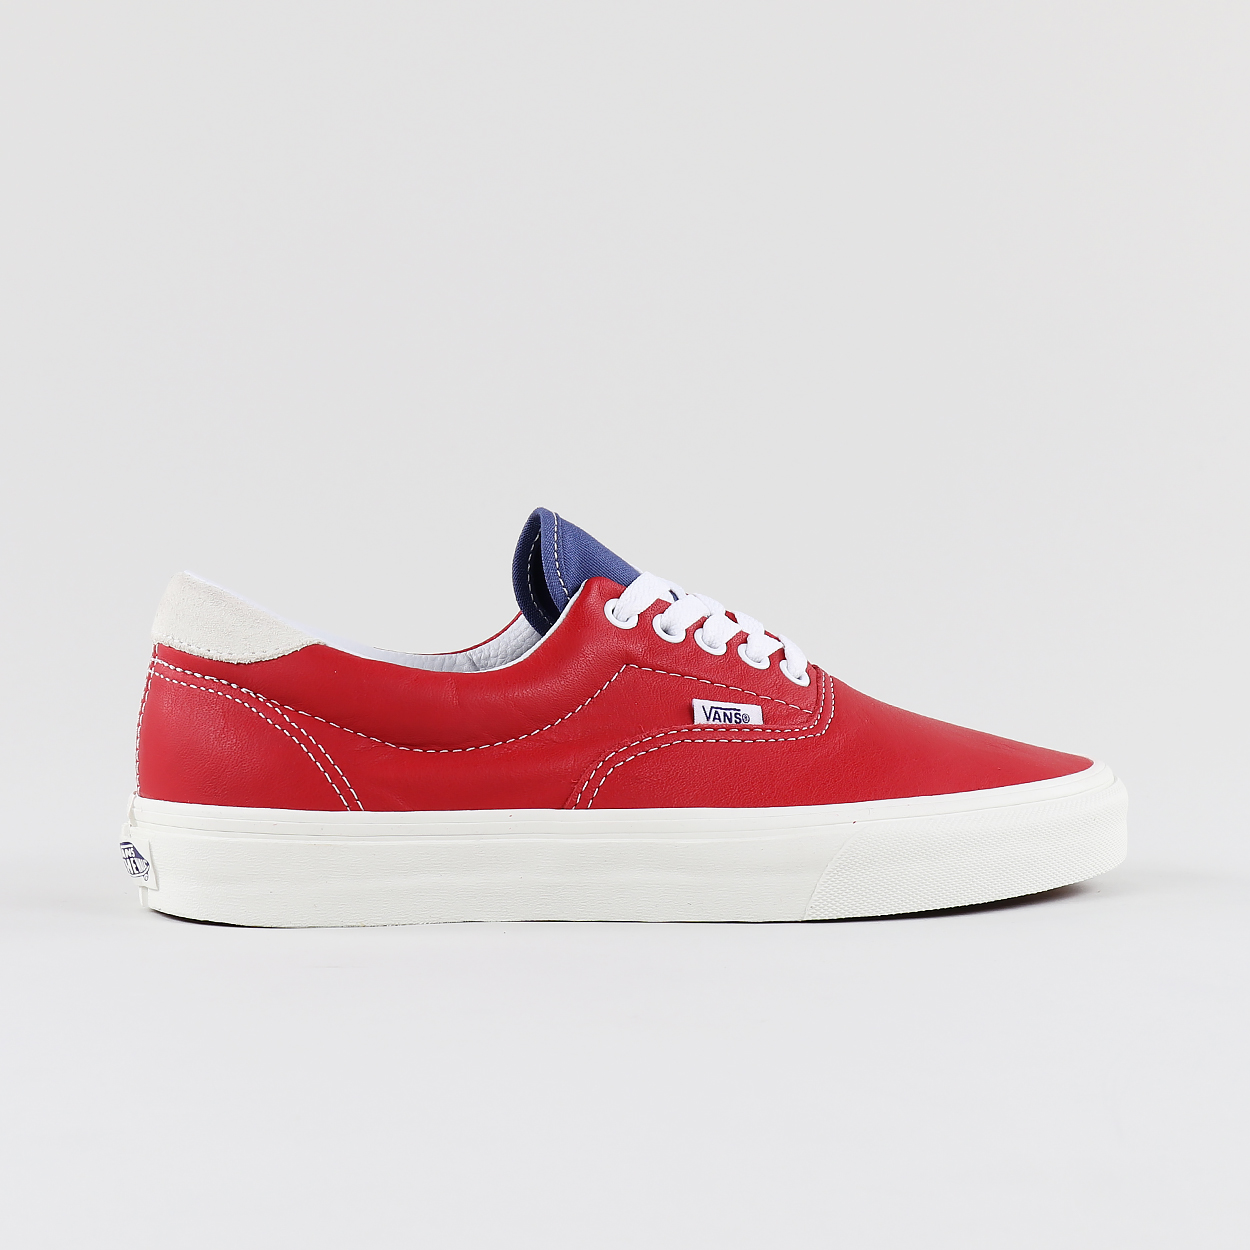 7140616972 Vans Skateboarding Era 59 Leather Shoes Racing Red Bjou Blue £39.90